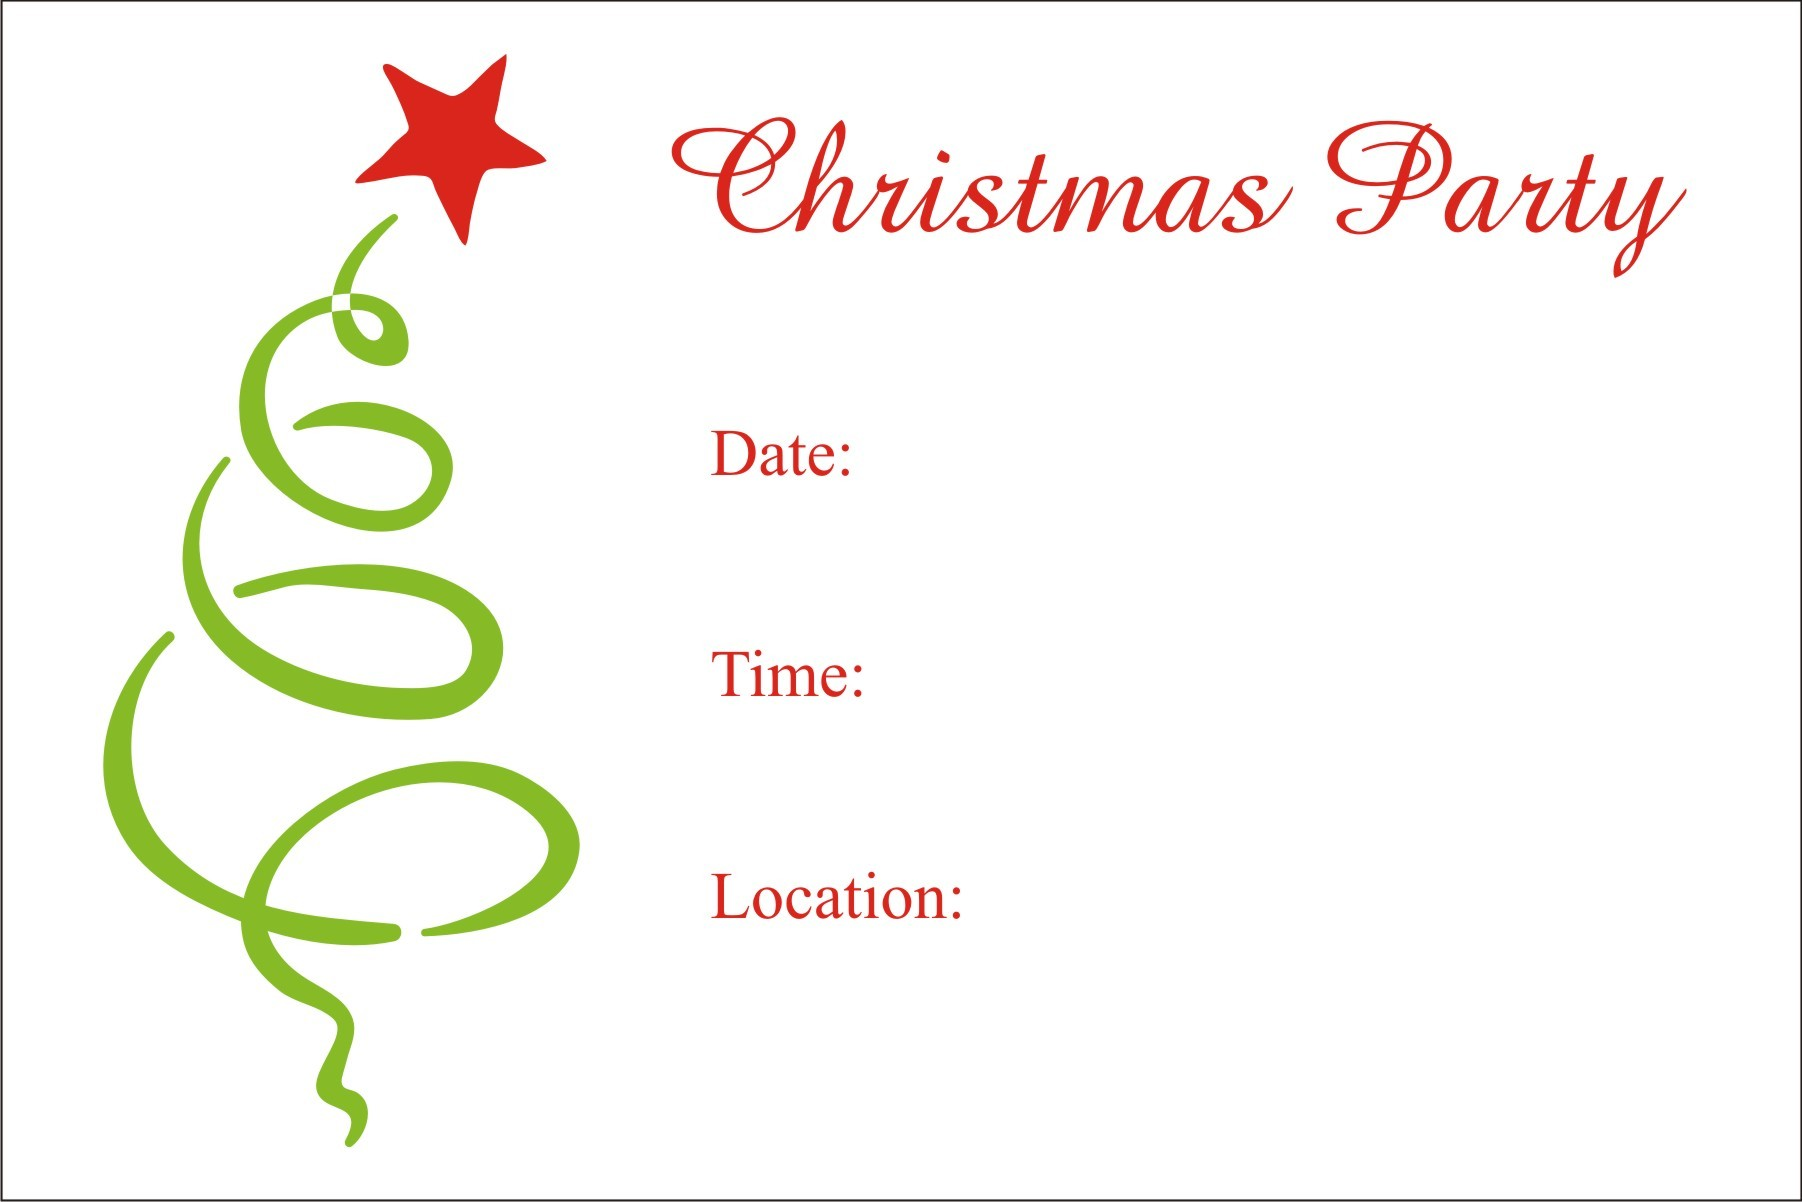 christmas party printable holiday invitation personalized christmas party printable holiday invitation